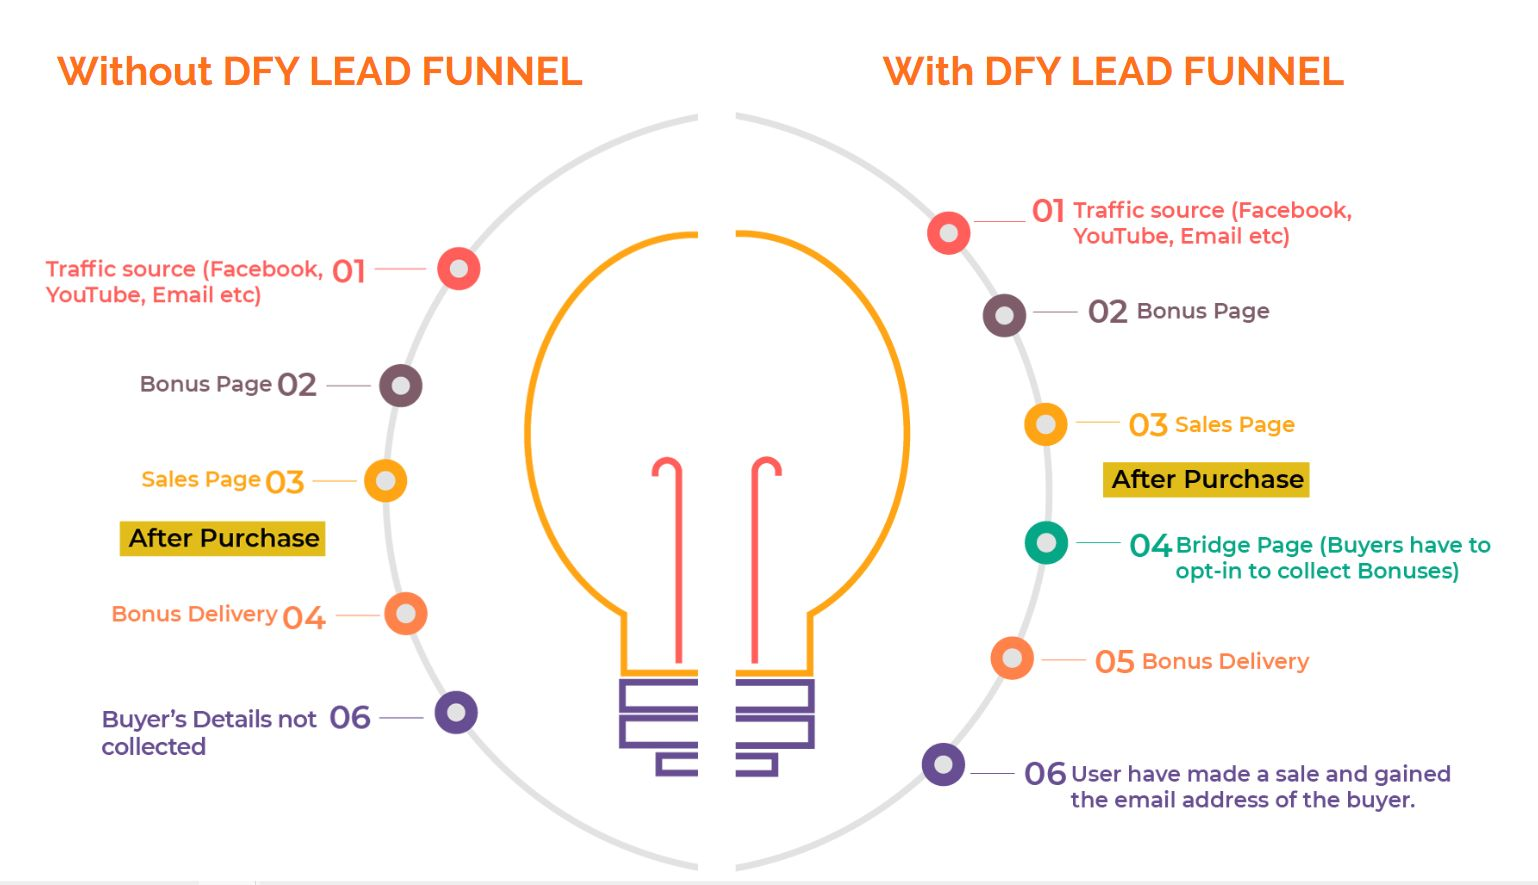 DFY-LeadFunnels-Benefits